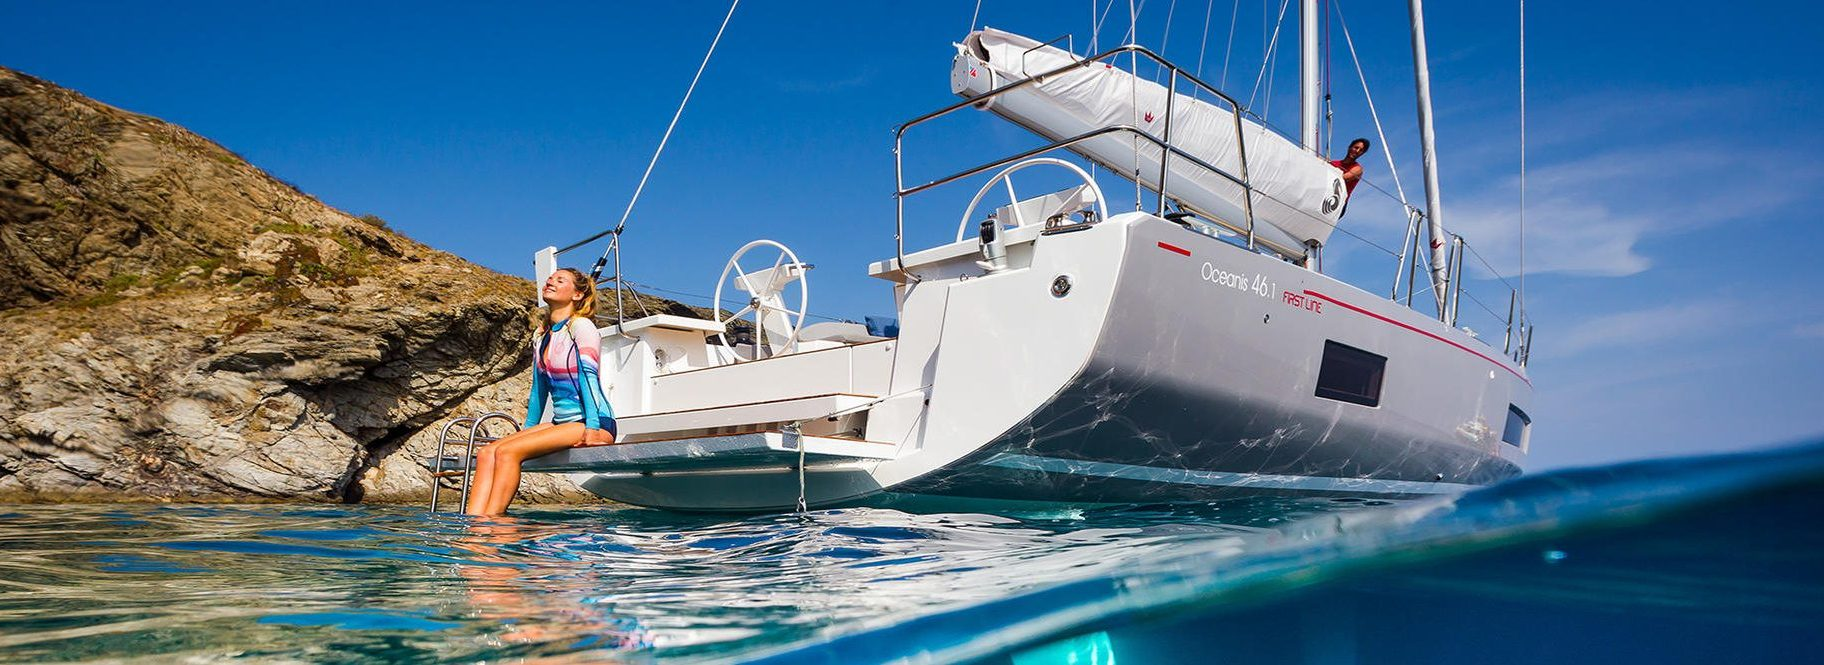 woman sitting on Beneteau Oceanis 46.1